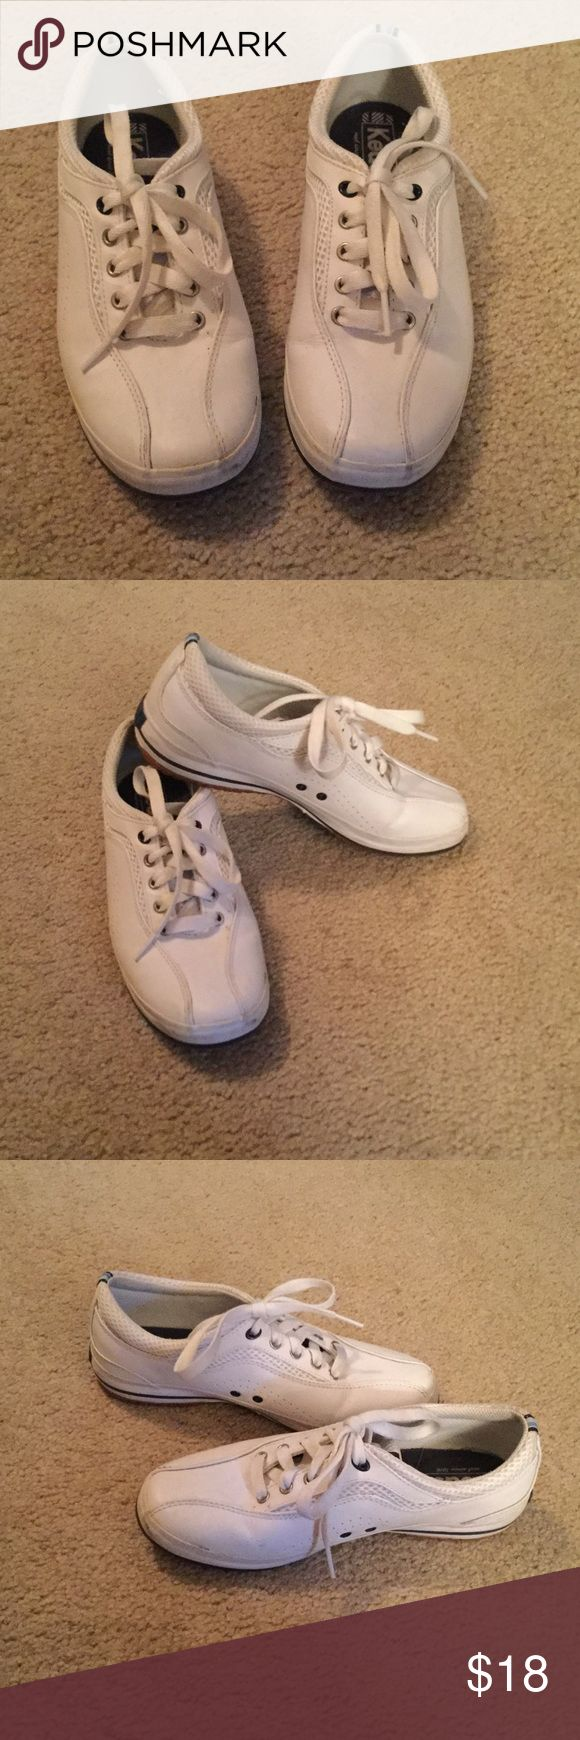 Keds White Sneakers Worn a few times, but good condition.  Cushioned insoles. White trimmed with navy blue. Keds Shoes Sneakers